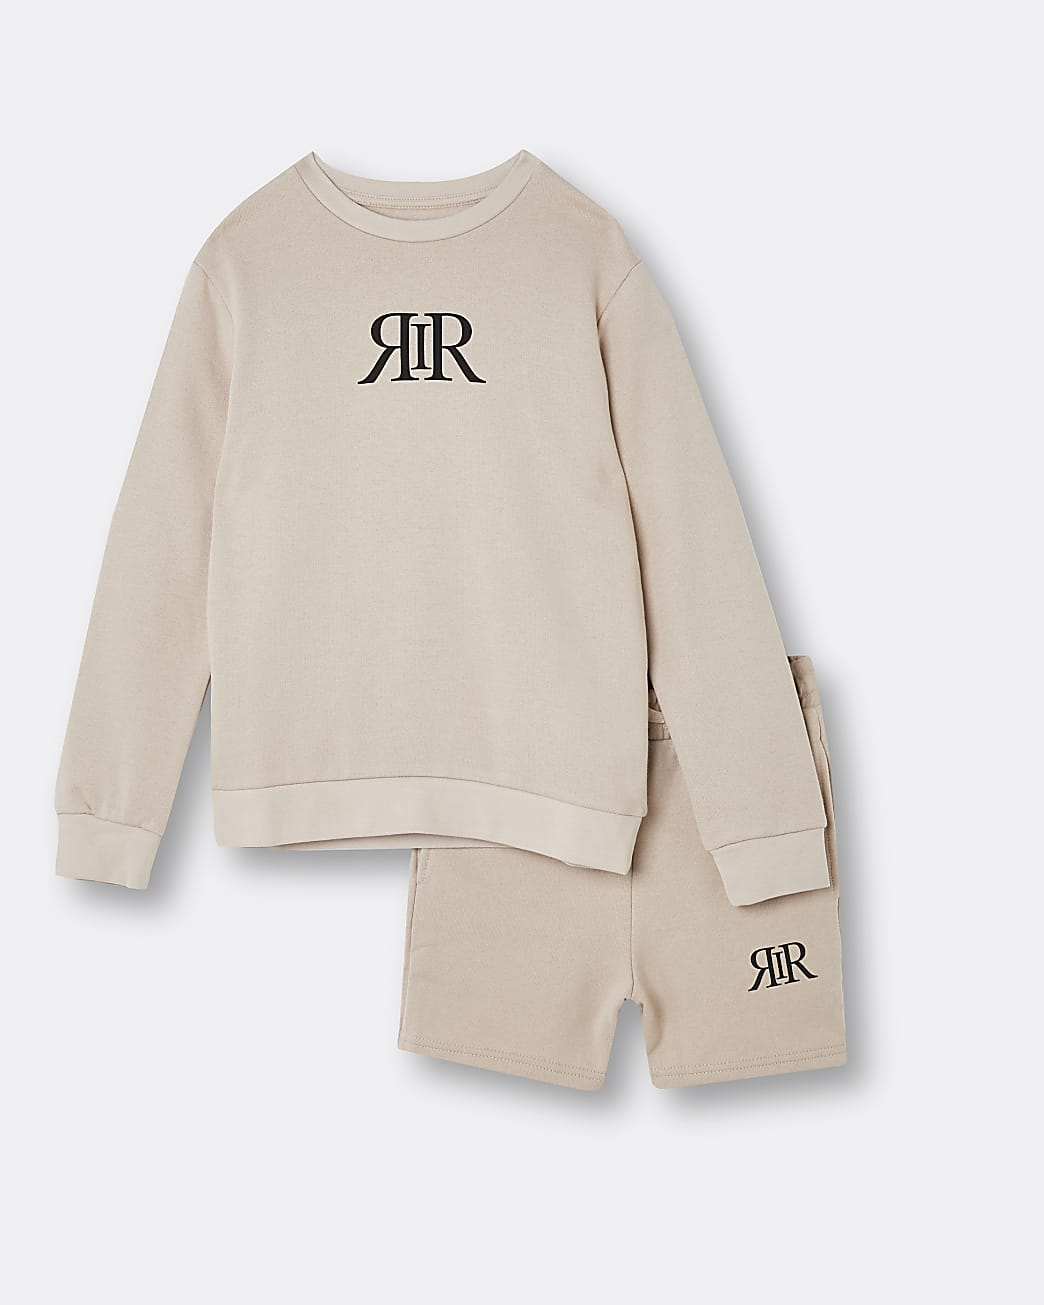 Boys stone RIR sweatshirt and shorts outfit